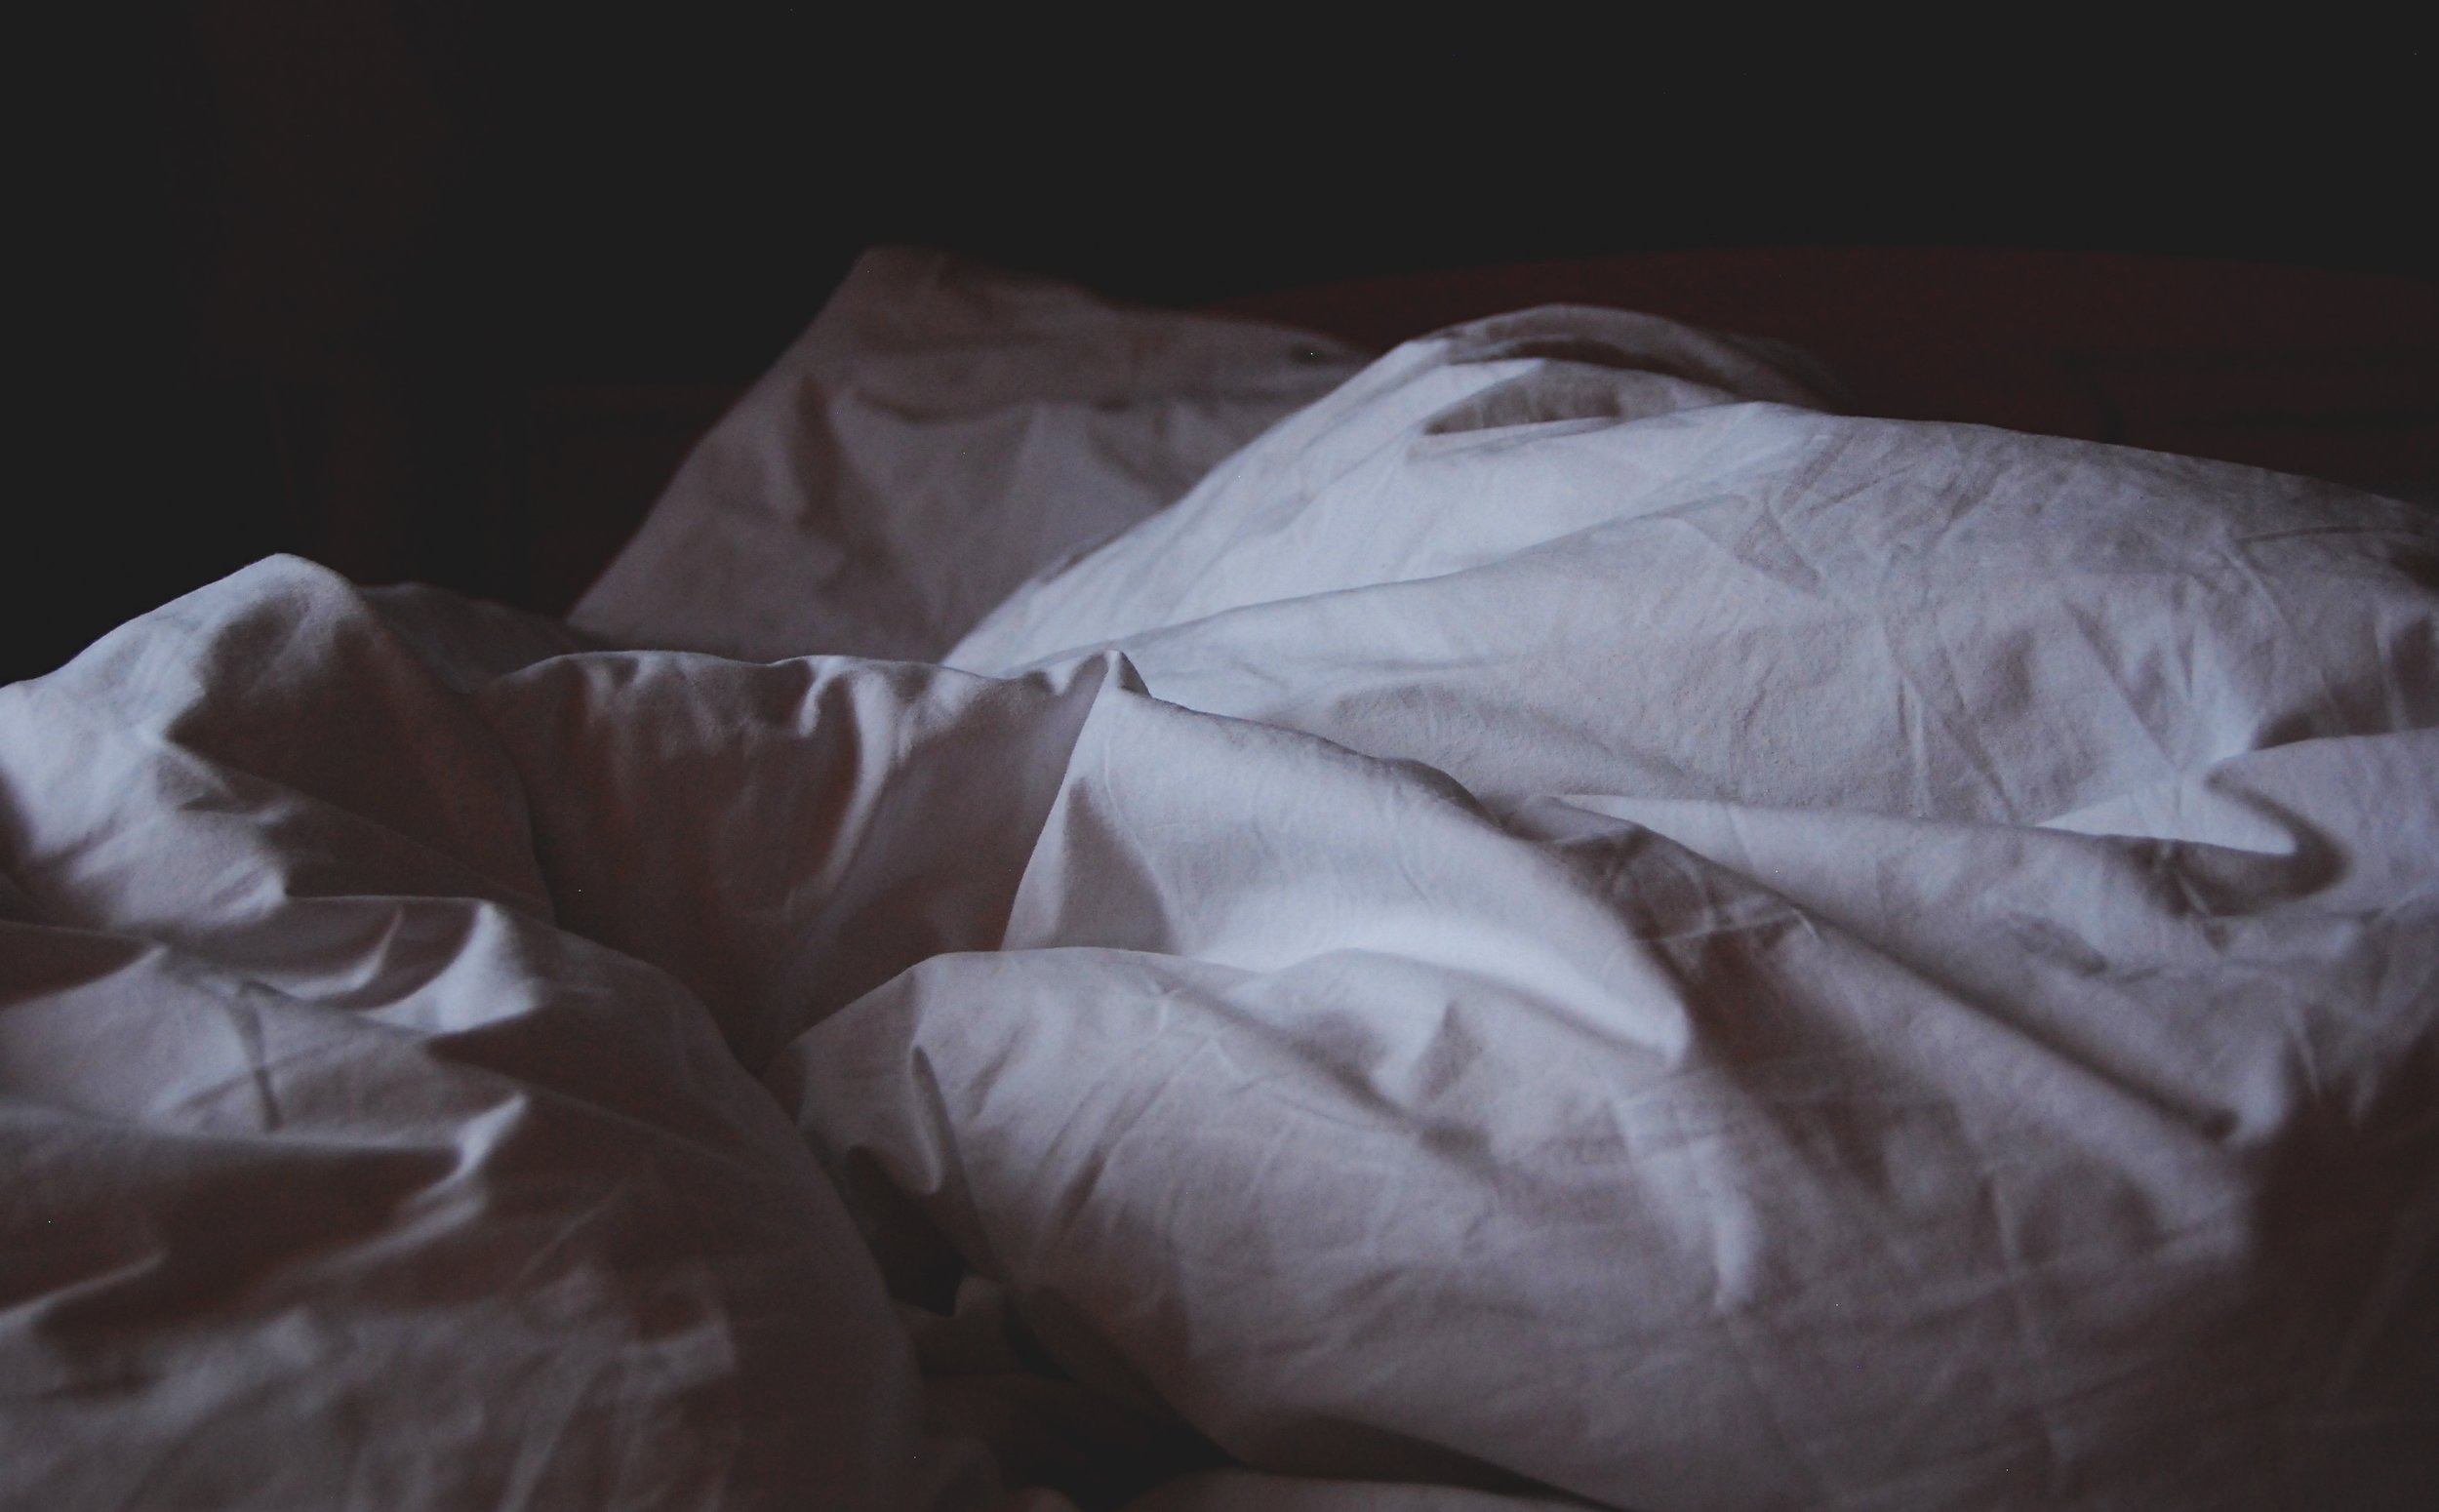 We spend a lot of our time under the sheets, but still don't fully understand why.   Krista Mangulsone/Unsplash  (CC0 1.0)